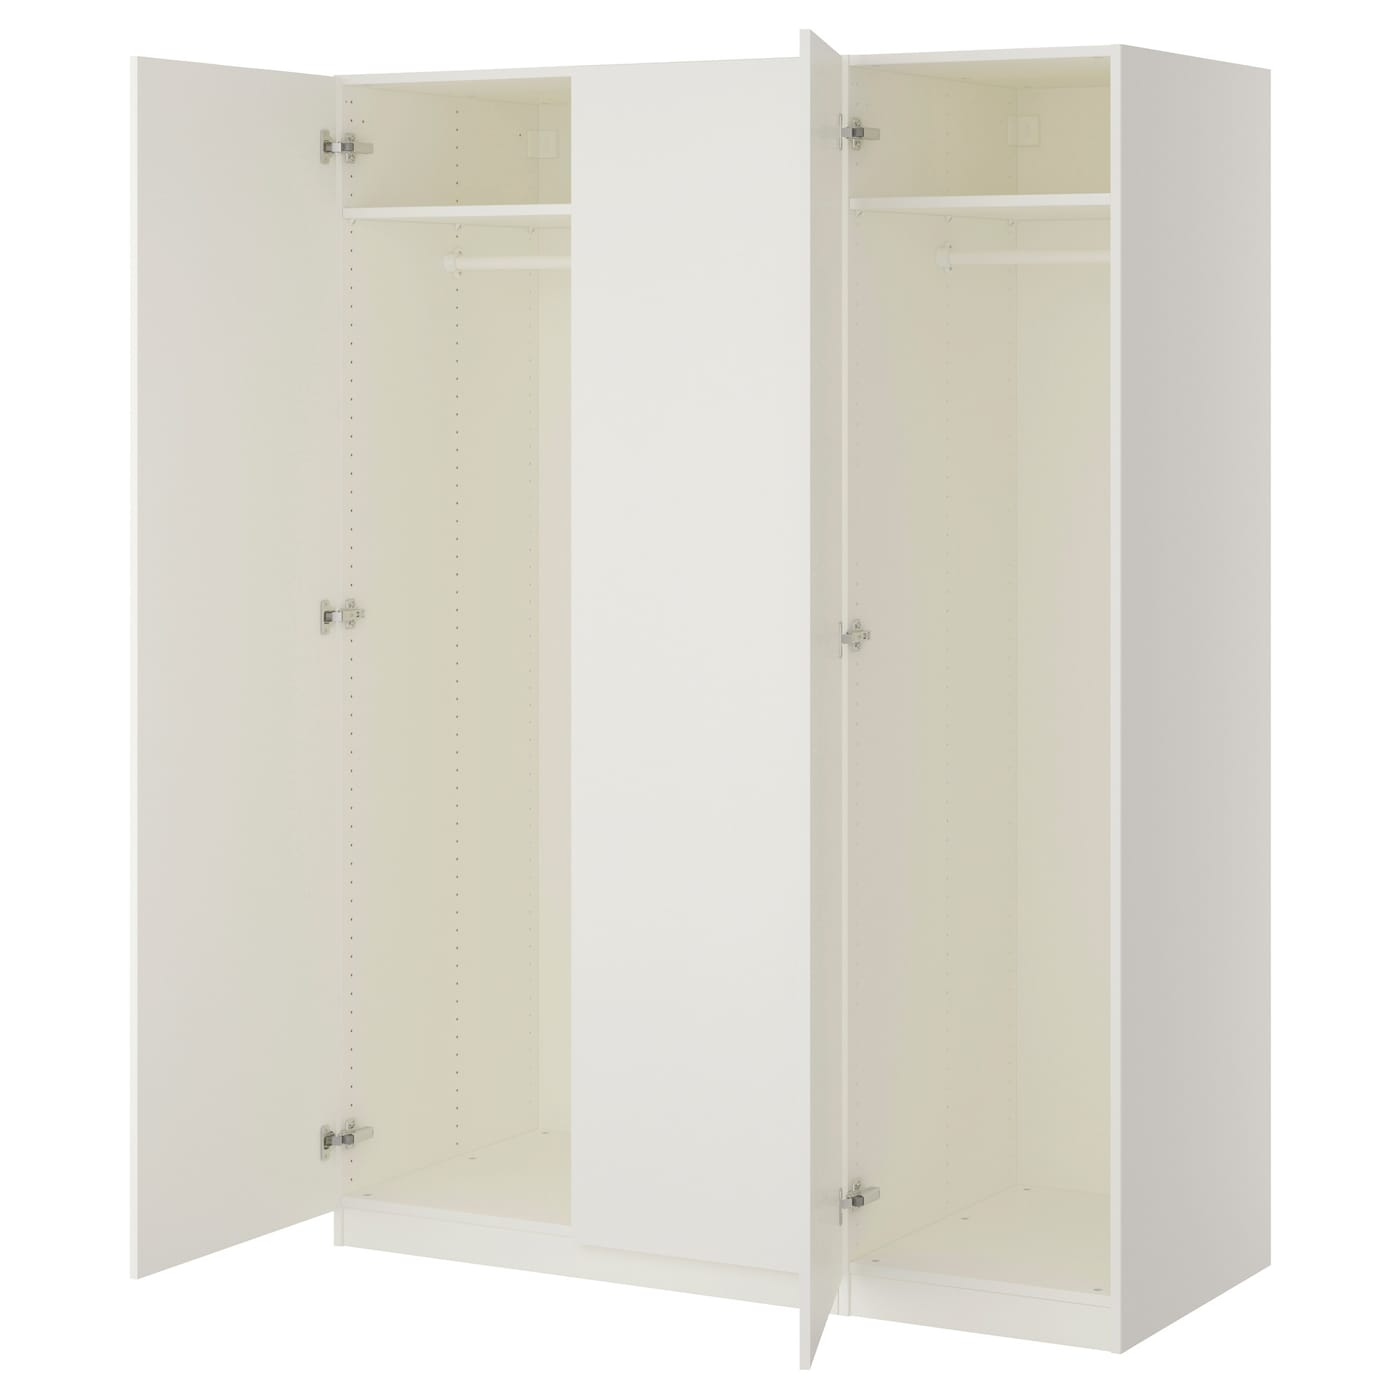 Schwebetürenschrank ikea pax  PAX Wardrobes | Design your own wardrobe at IKEA